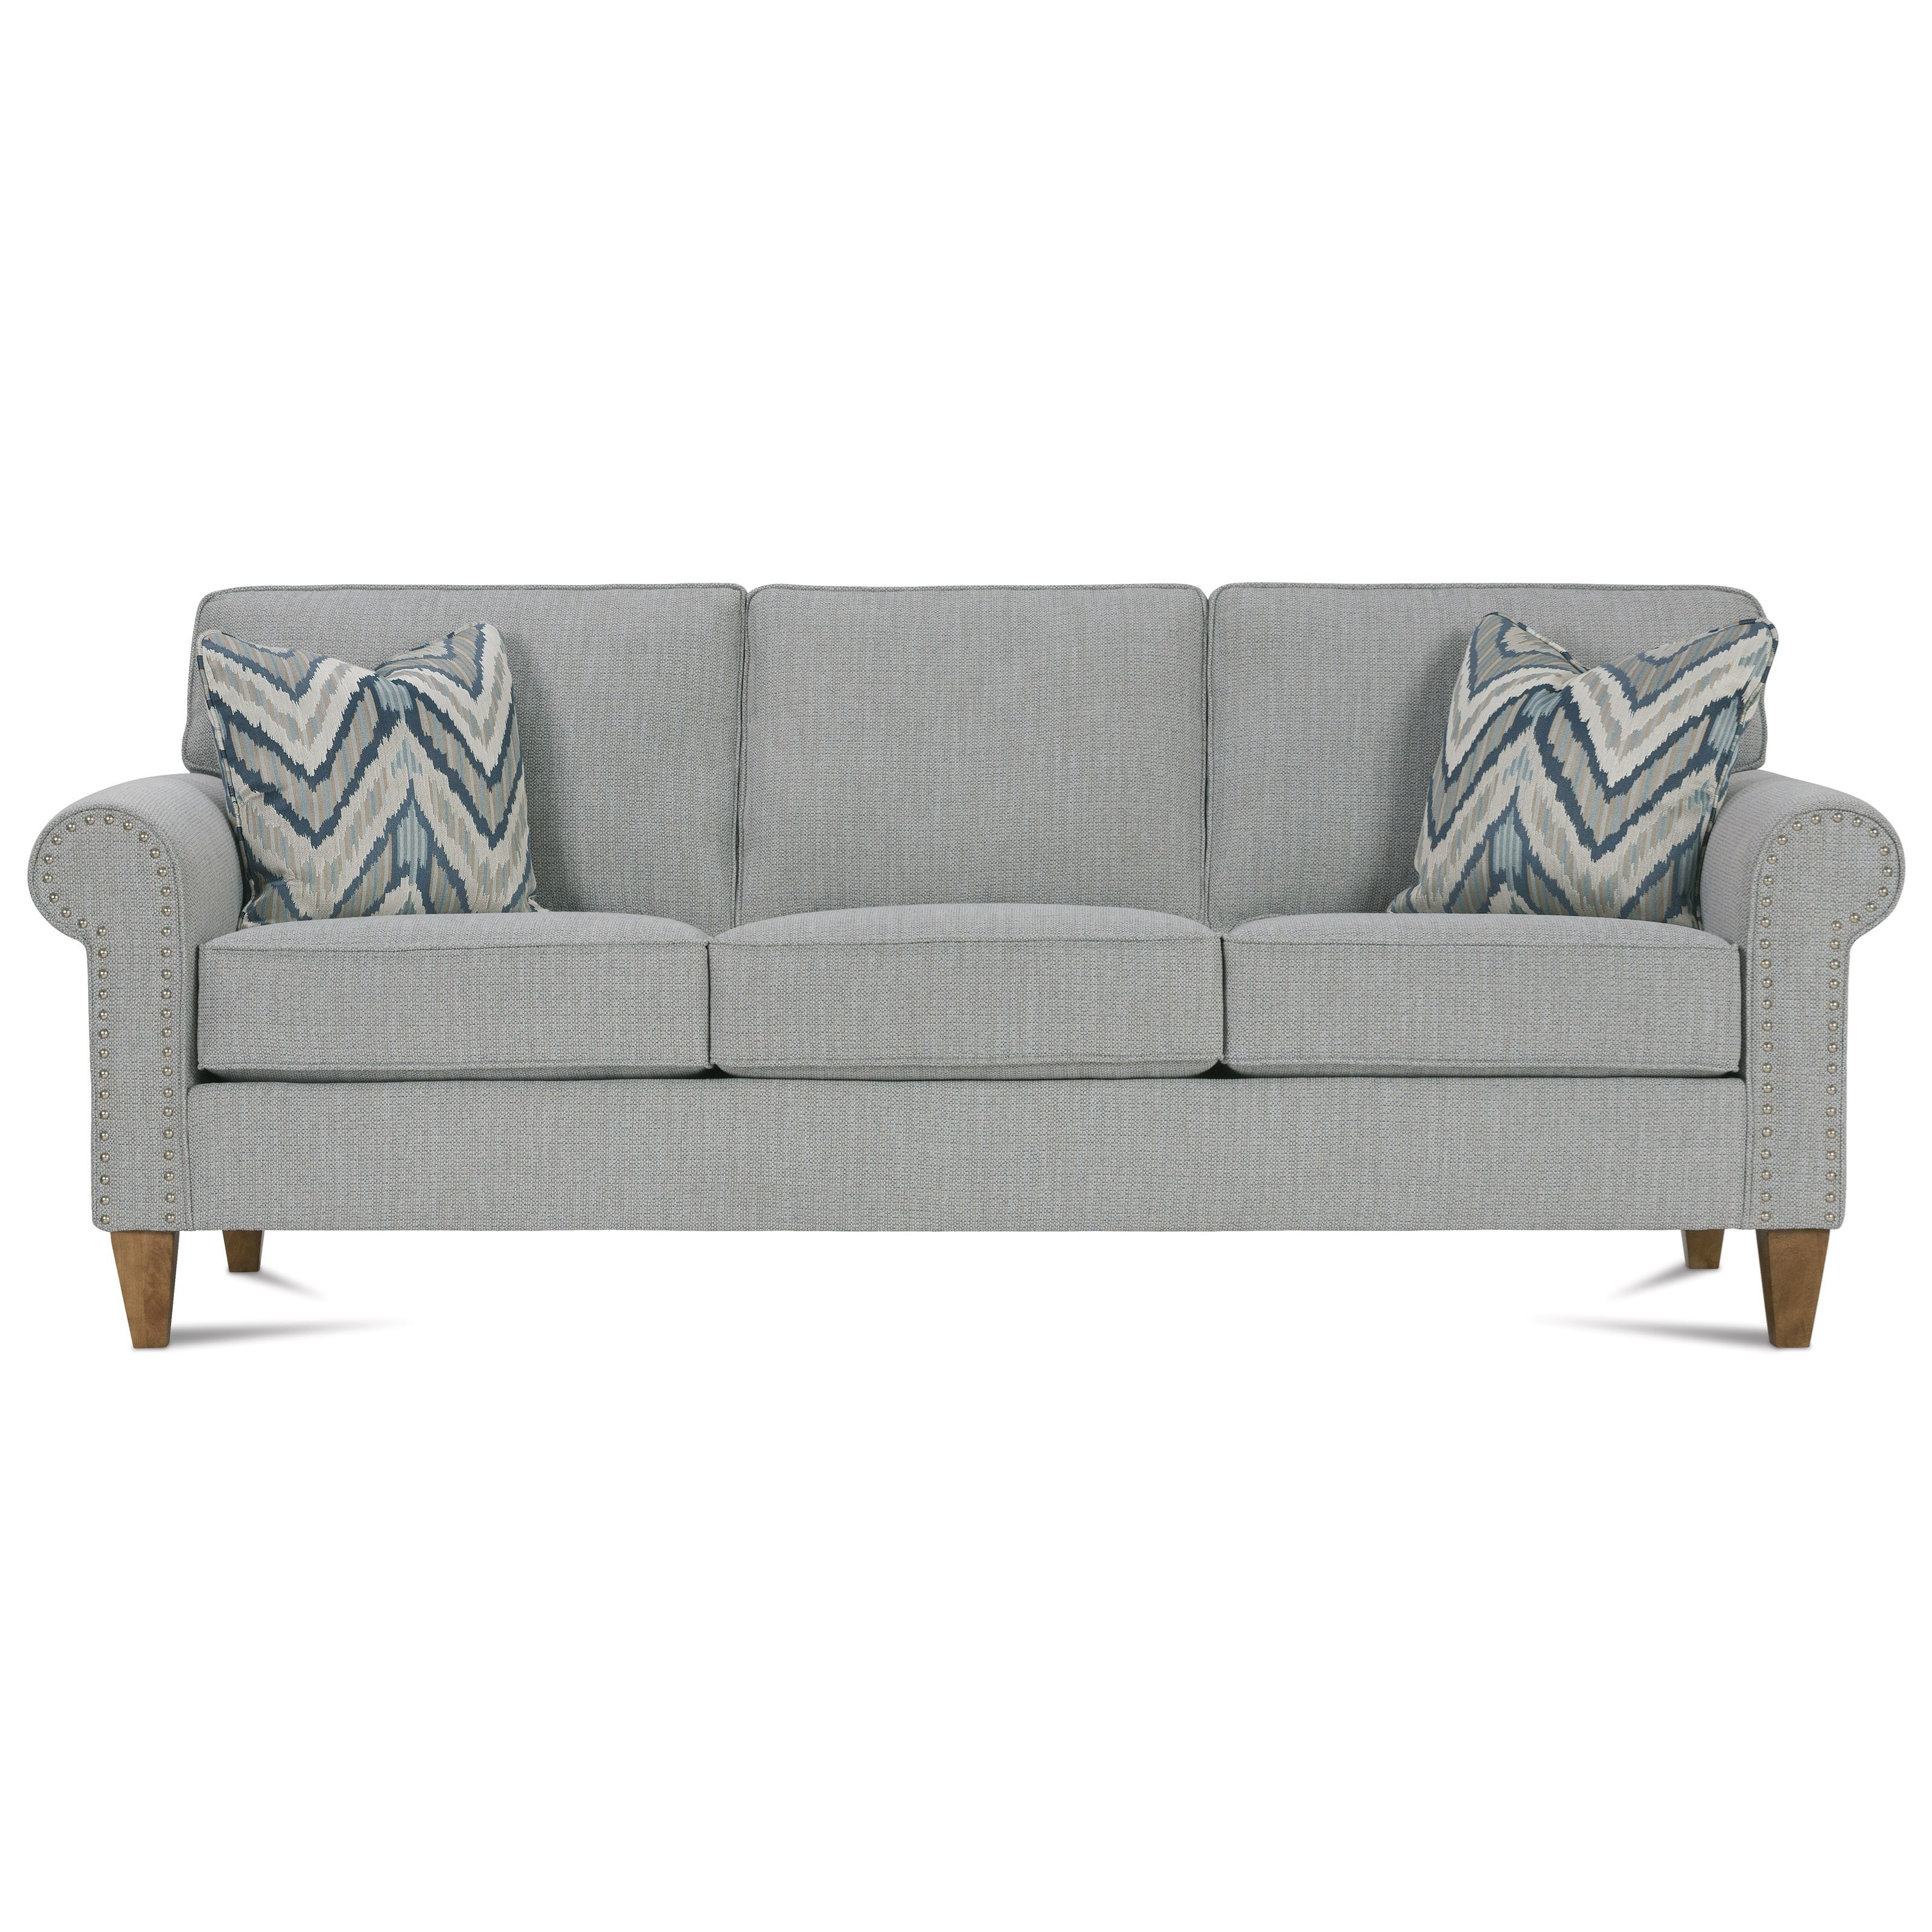 Bleeker - RXO Queen Sleeper by Rowe at Esprit Decor Home Furnishings